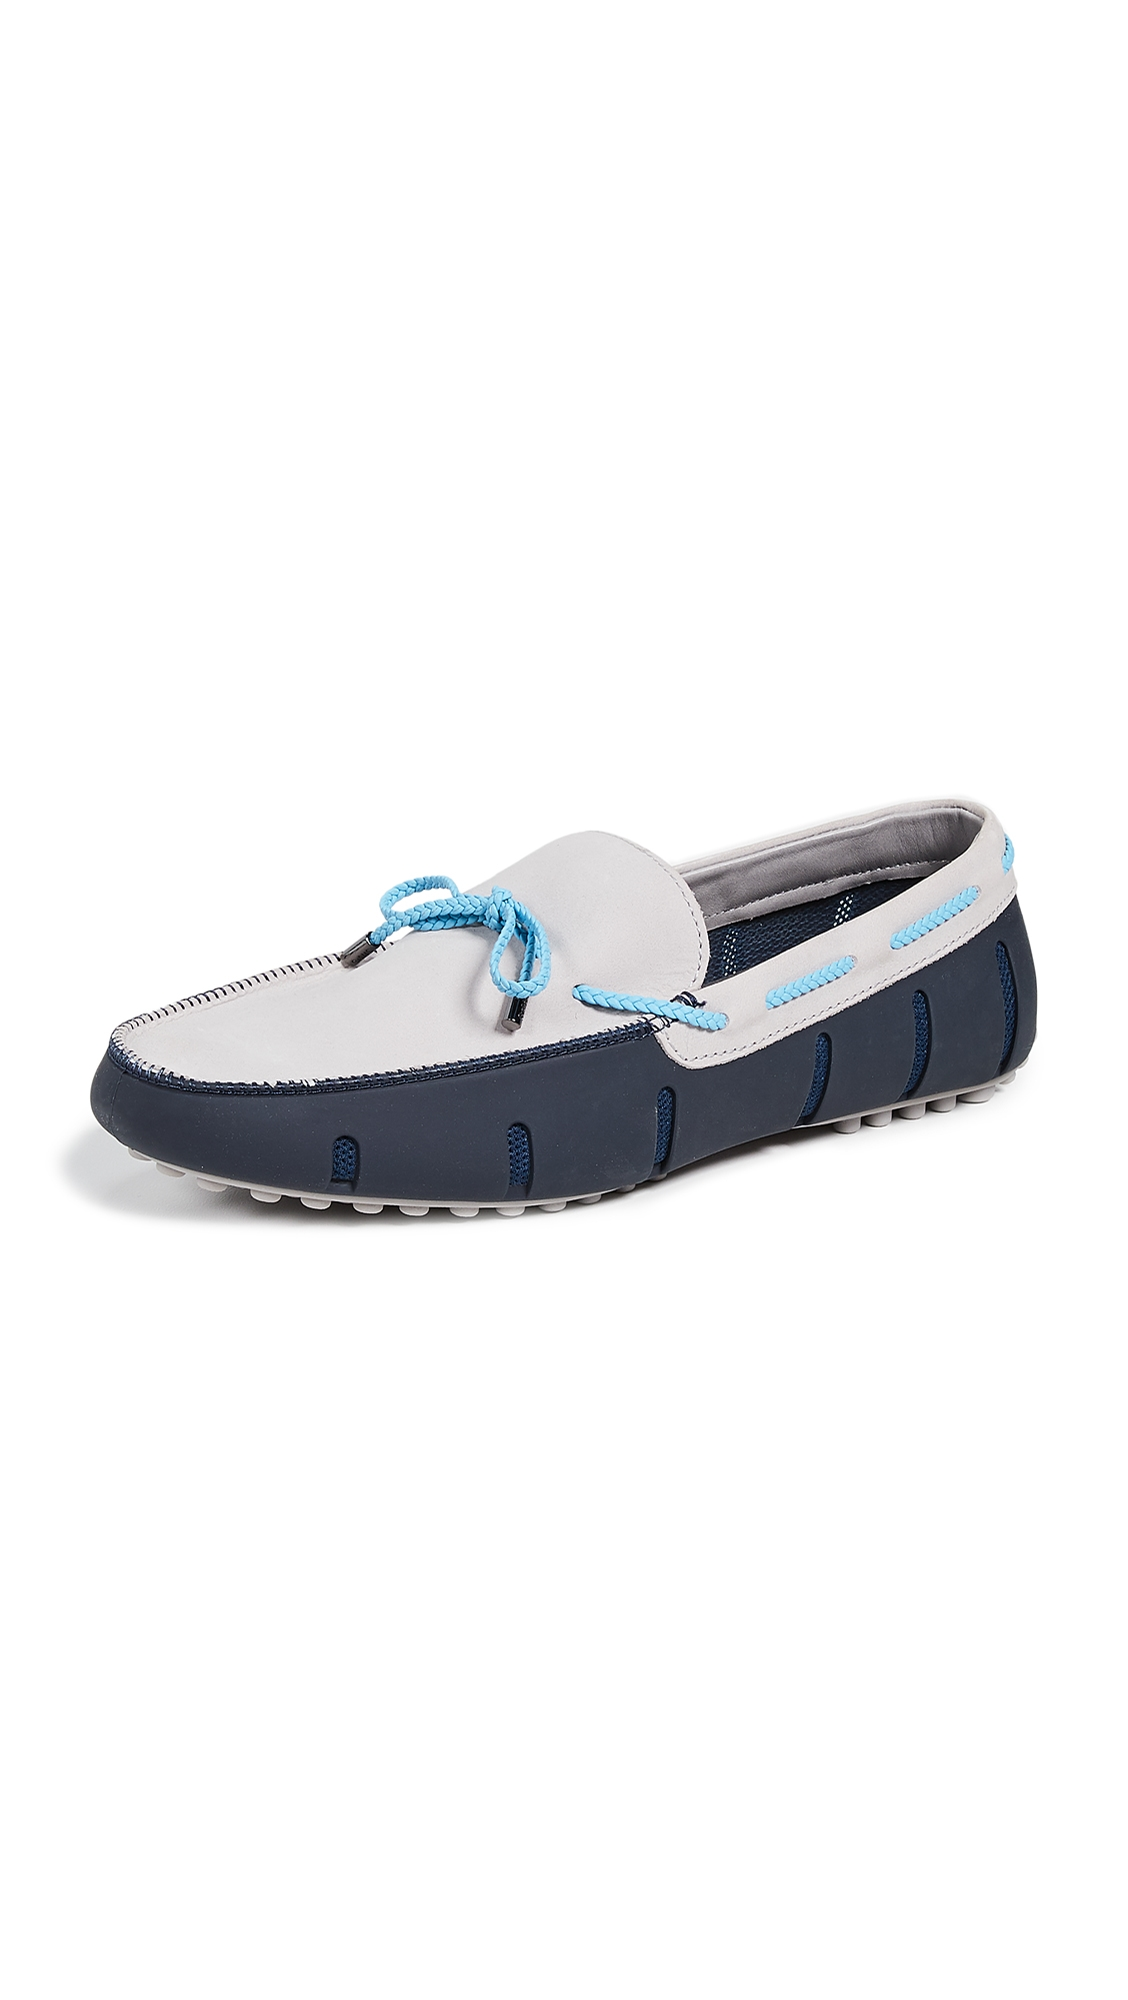 SWIMS Men'S Braided Lace Lux Waterproof Loafers in Navy/Alloy